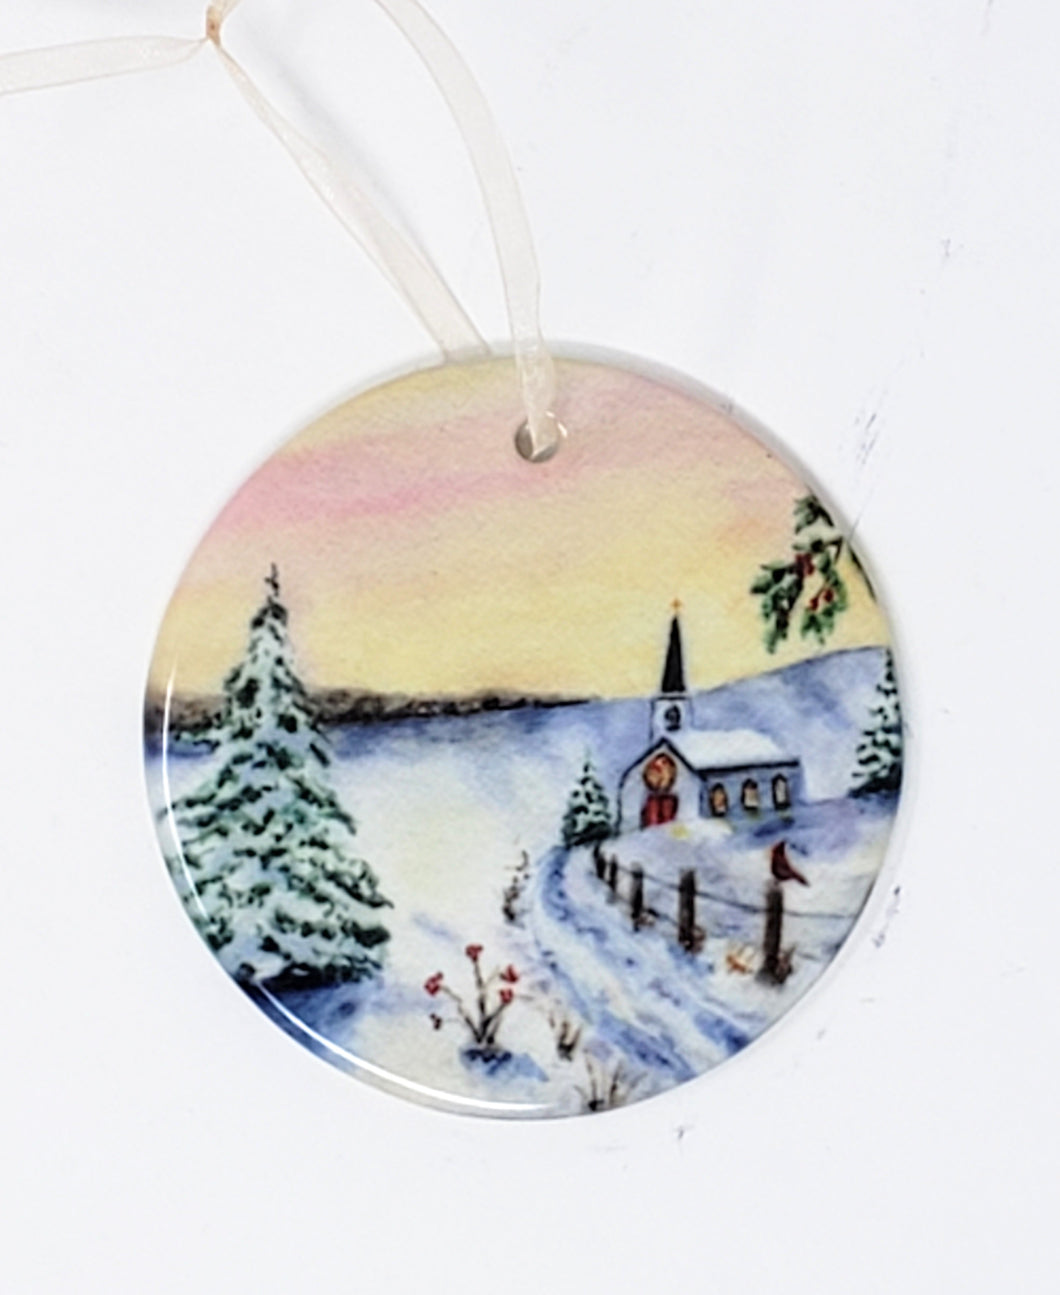 Christmas Ornament, Ceramic Christmas Ornaments  small Christmas gift  small gift for mom - Leigh Barry Watercolors